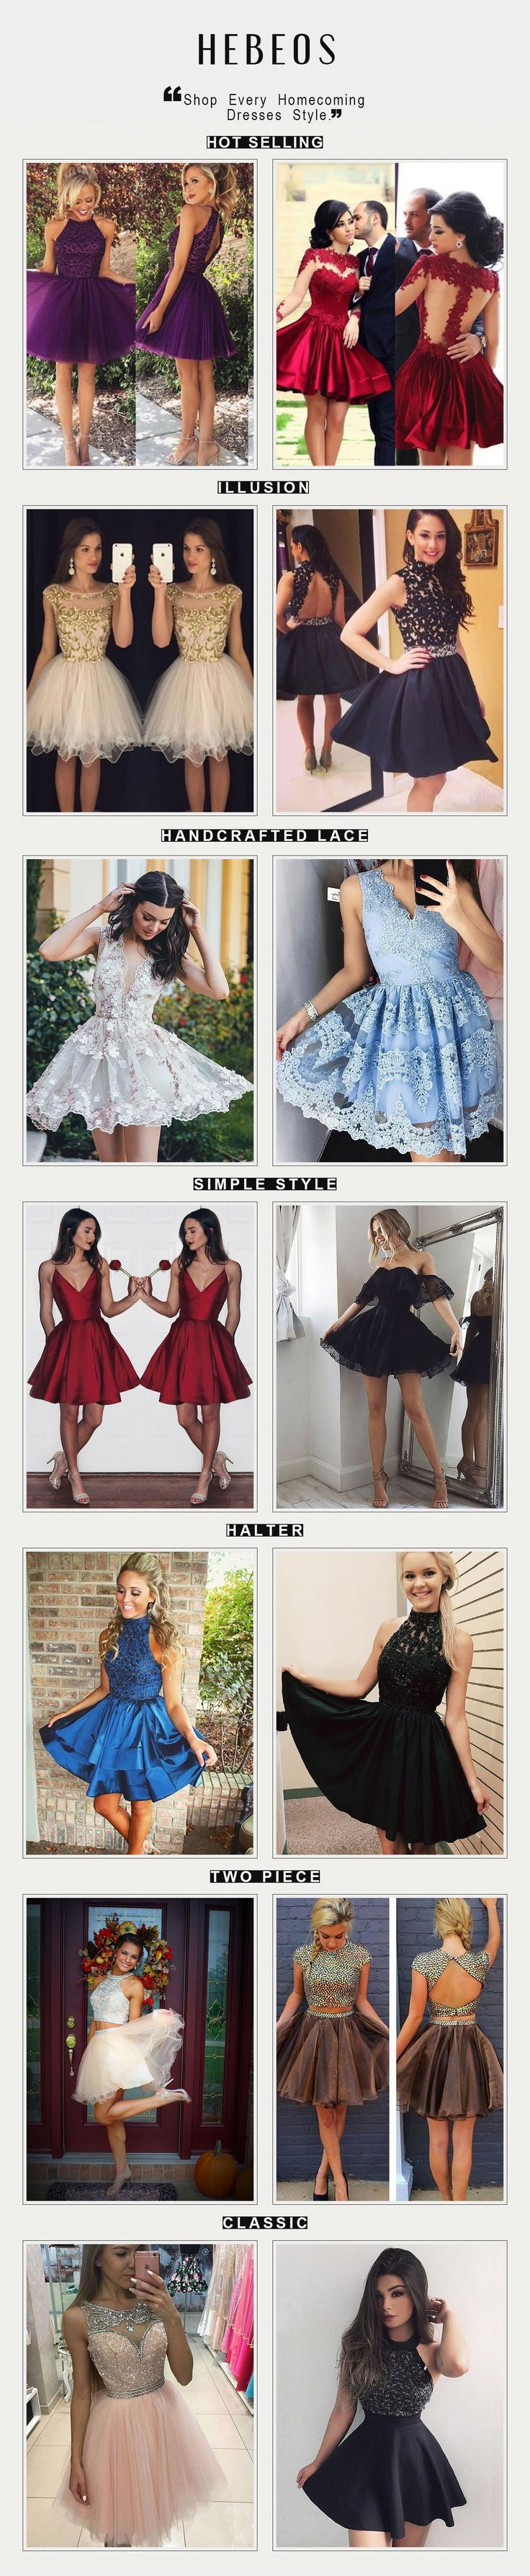 #Homecoming dresses on back to school sale! Black/ lace/short formal gowns under $120. via Hebeos.com